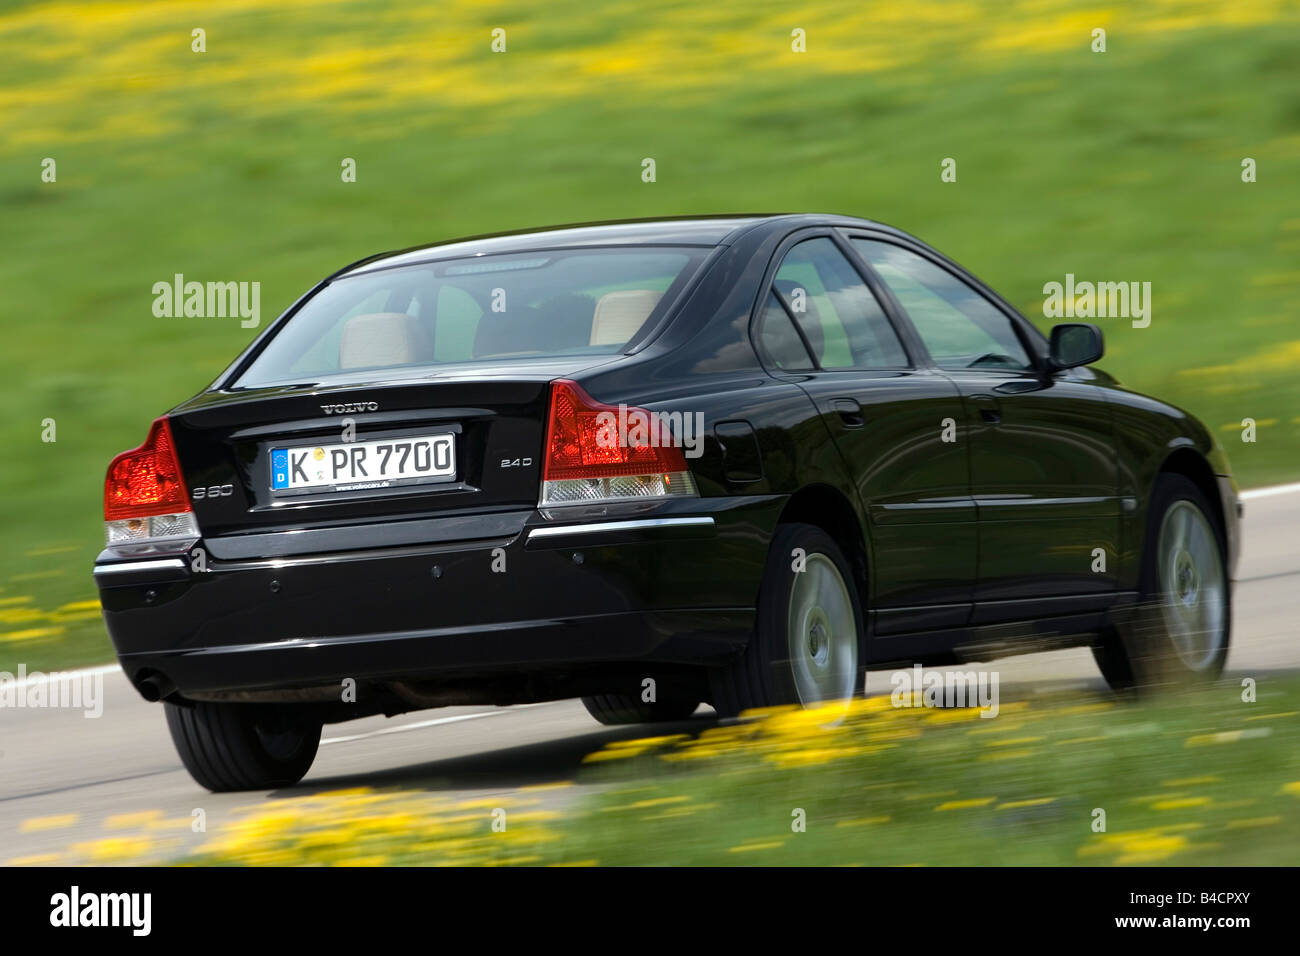 Volvo S60 2 4d Model Year 2006 Black Driving Diagonal From The Stock Photo Alamy